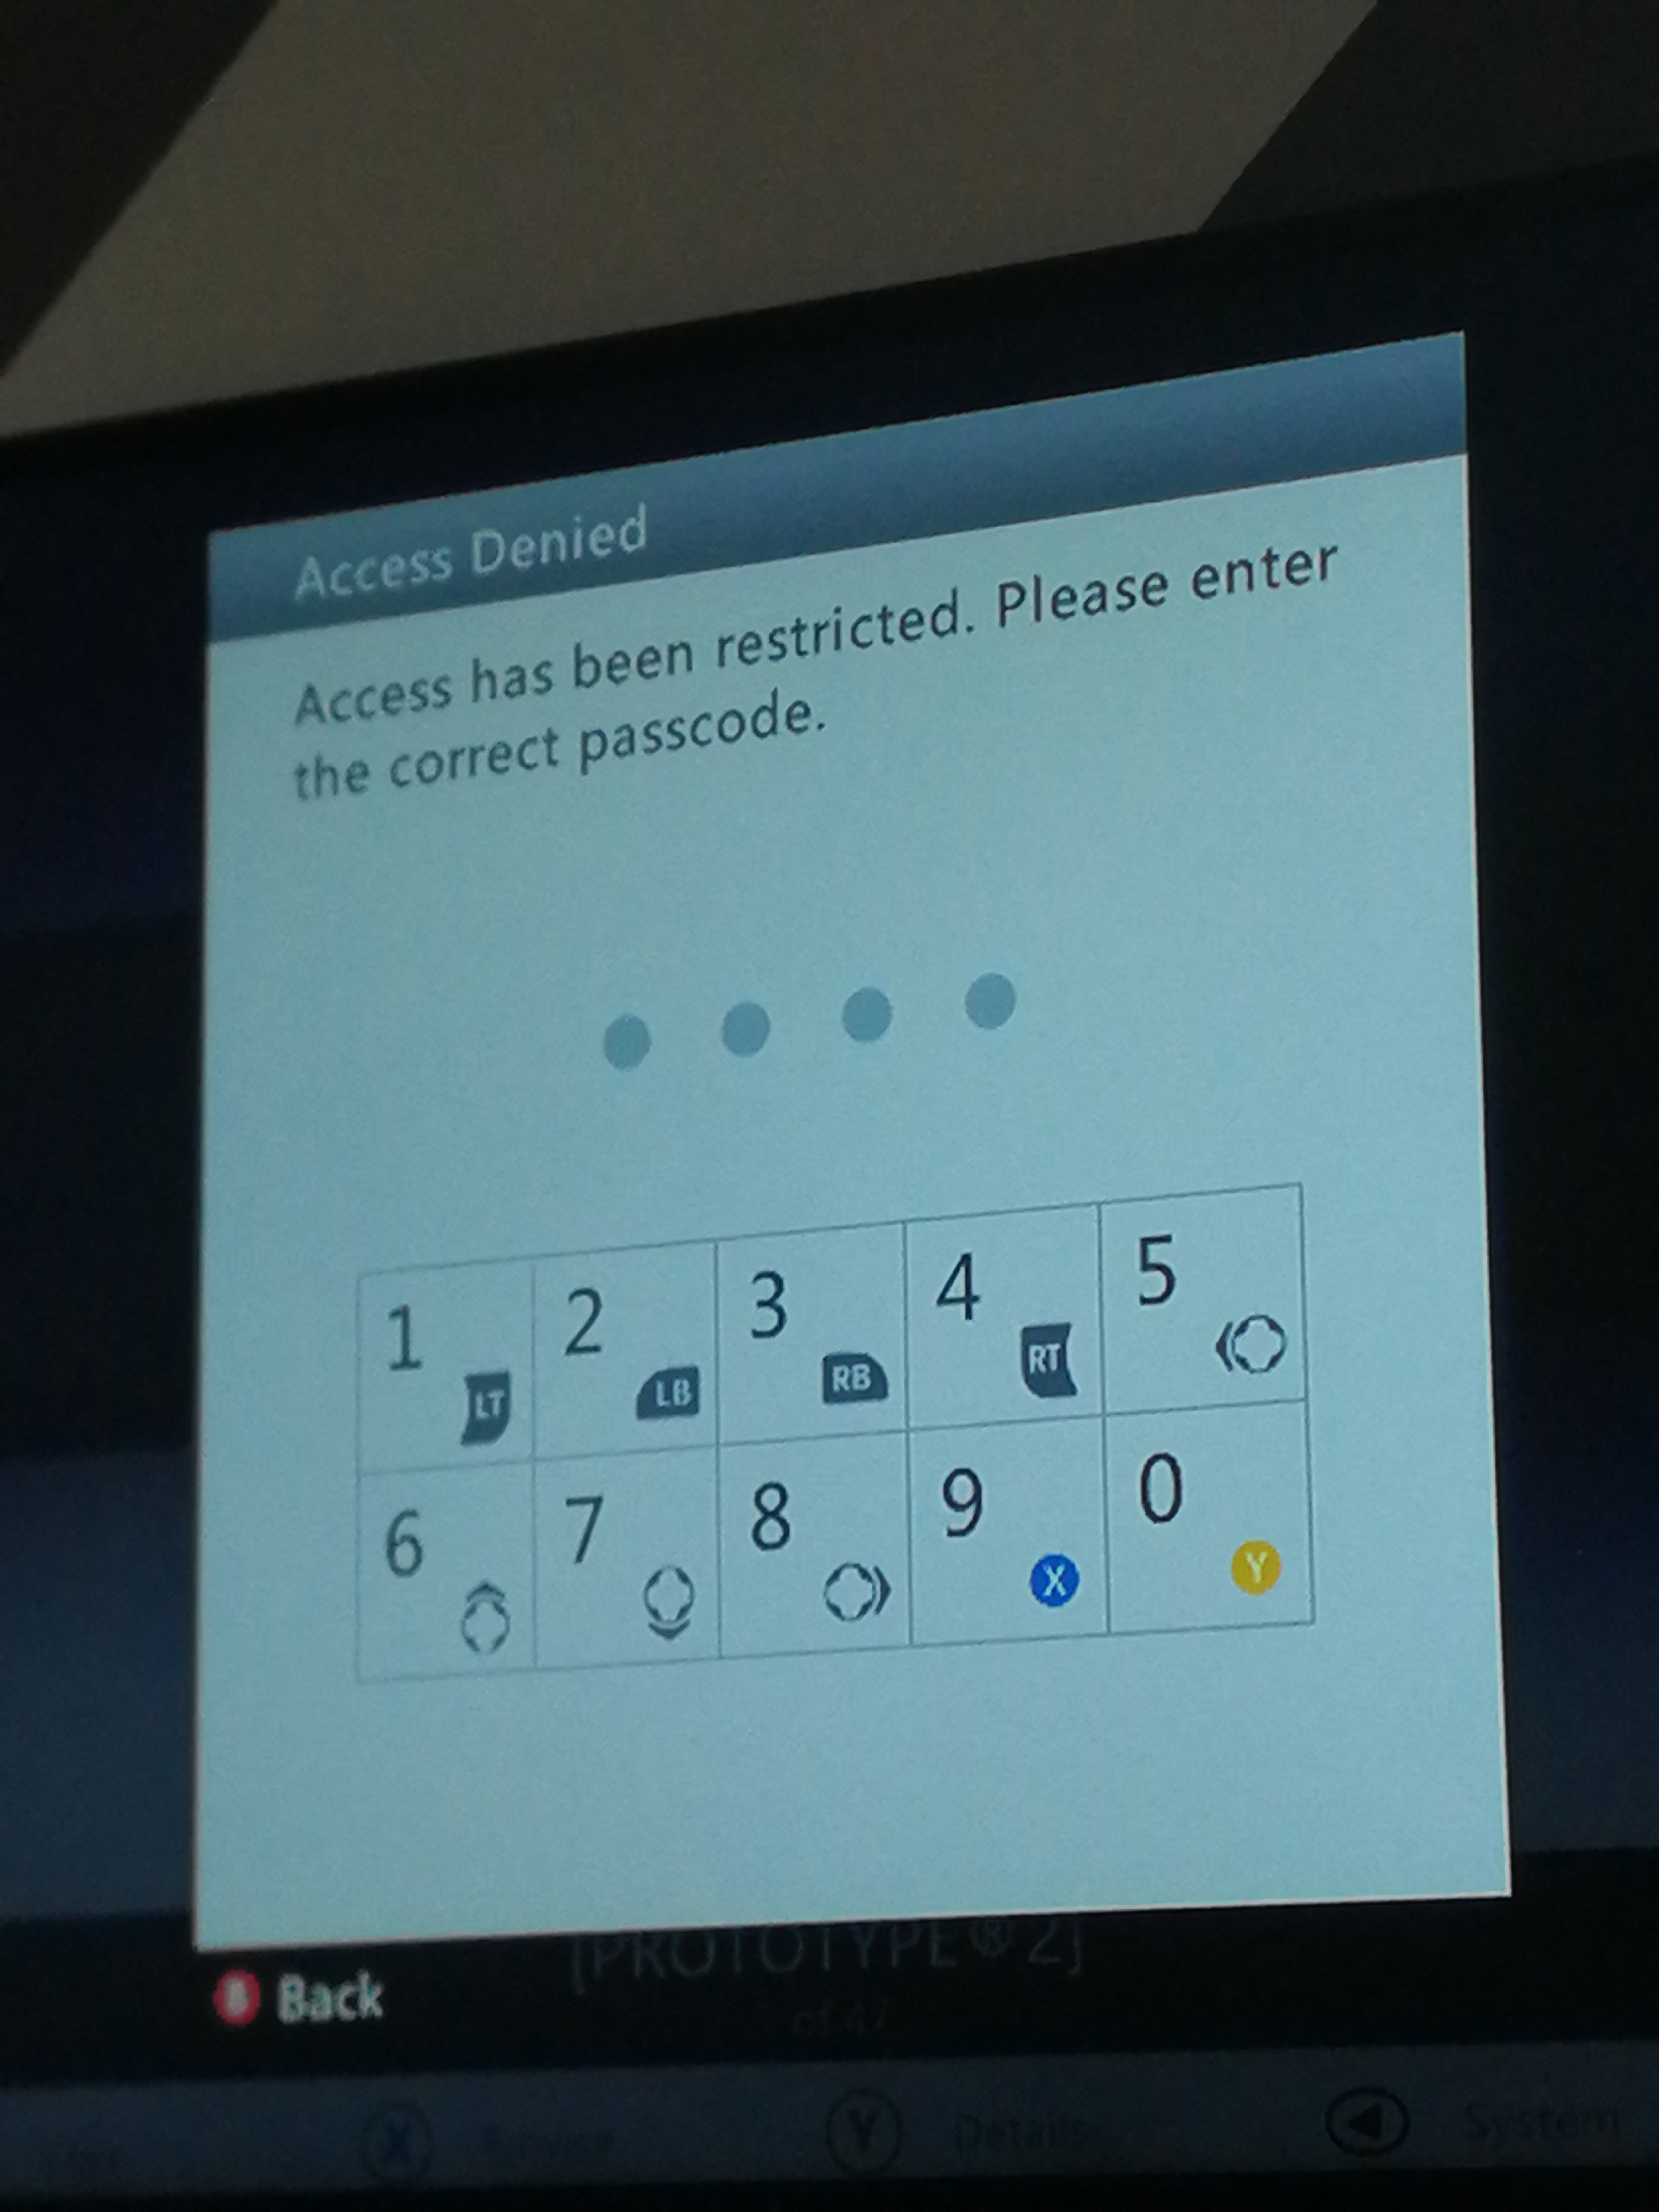 Xbox 360 Passcode Bypass - Updated Daily 2021